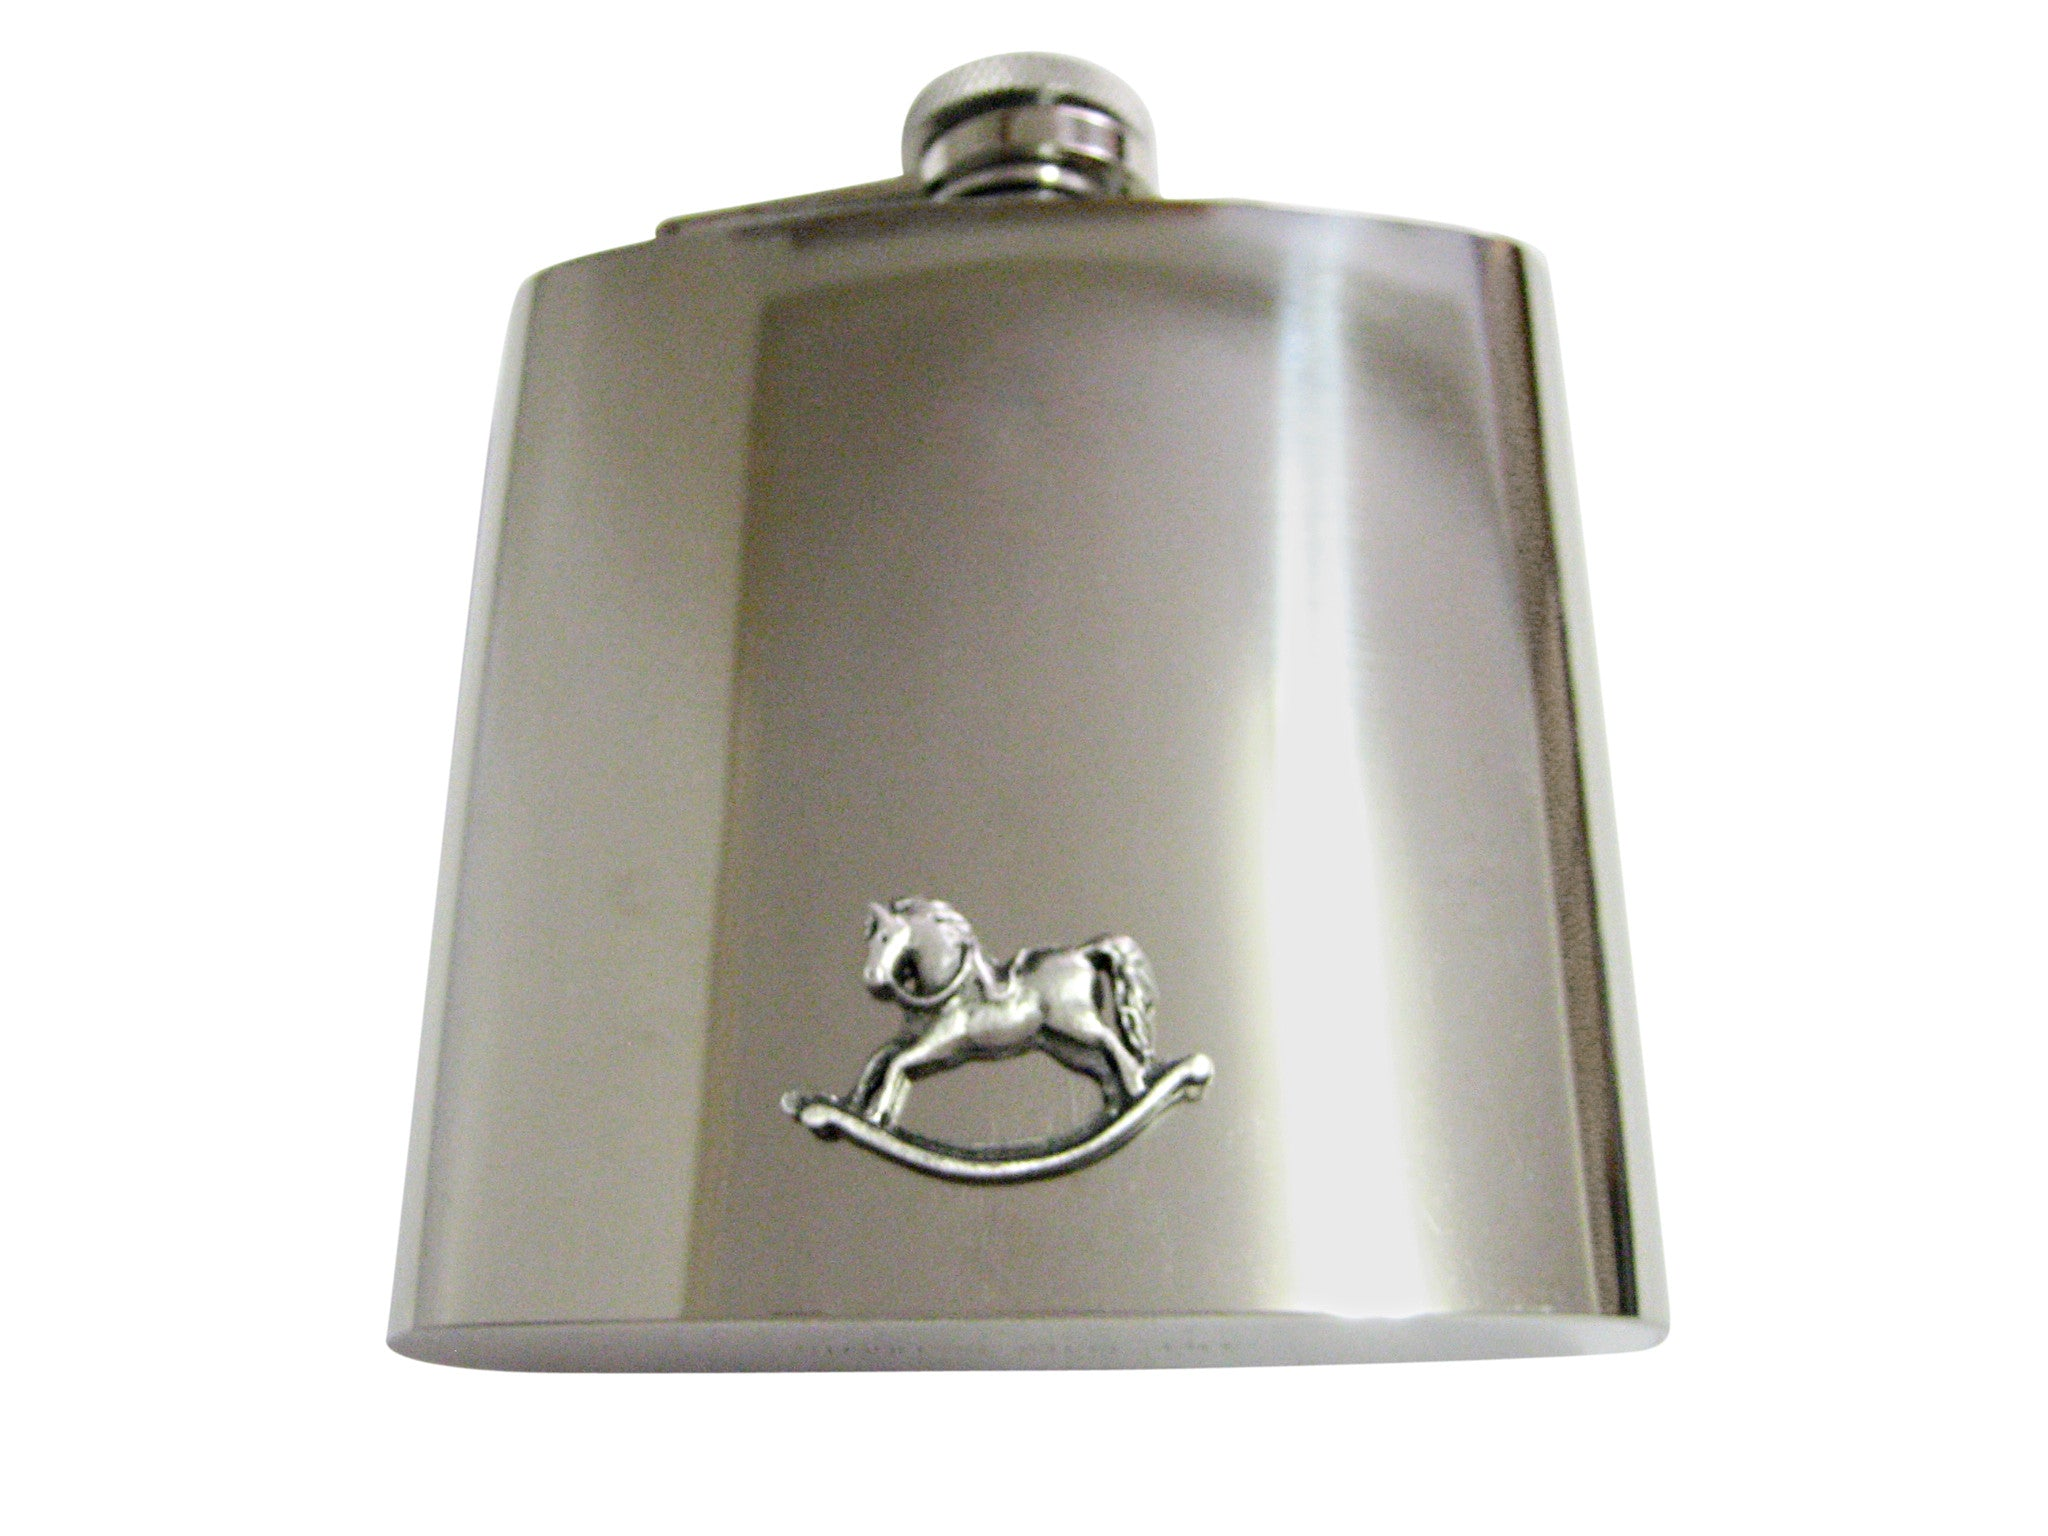 Rocking Horse 6 Oz. Stainless Steel Flask